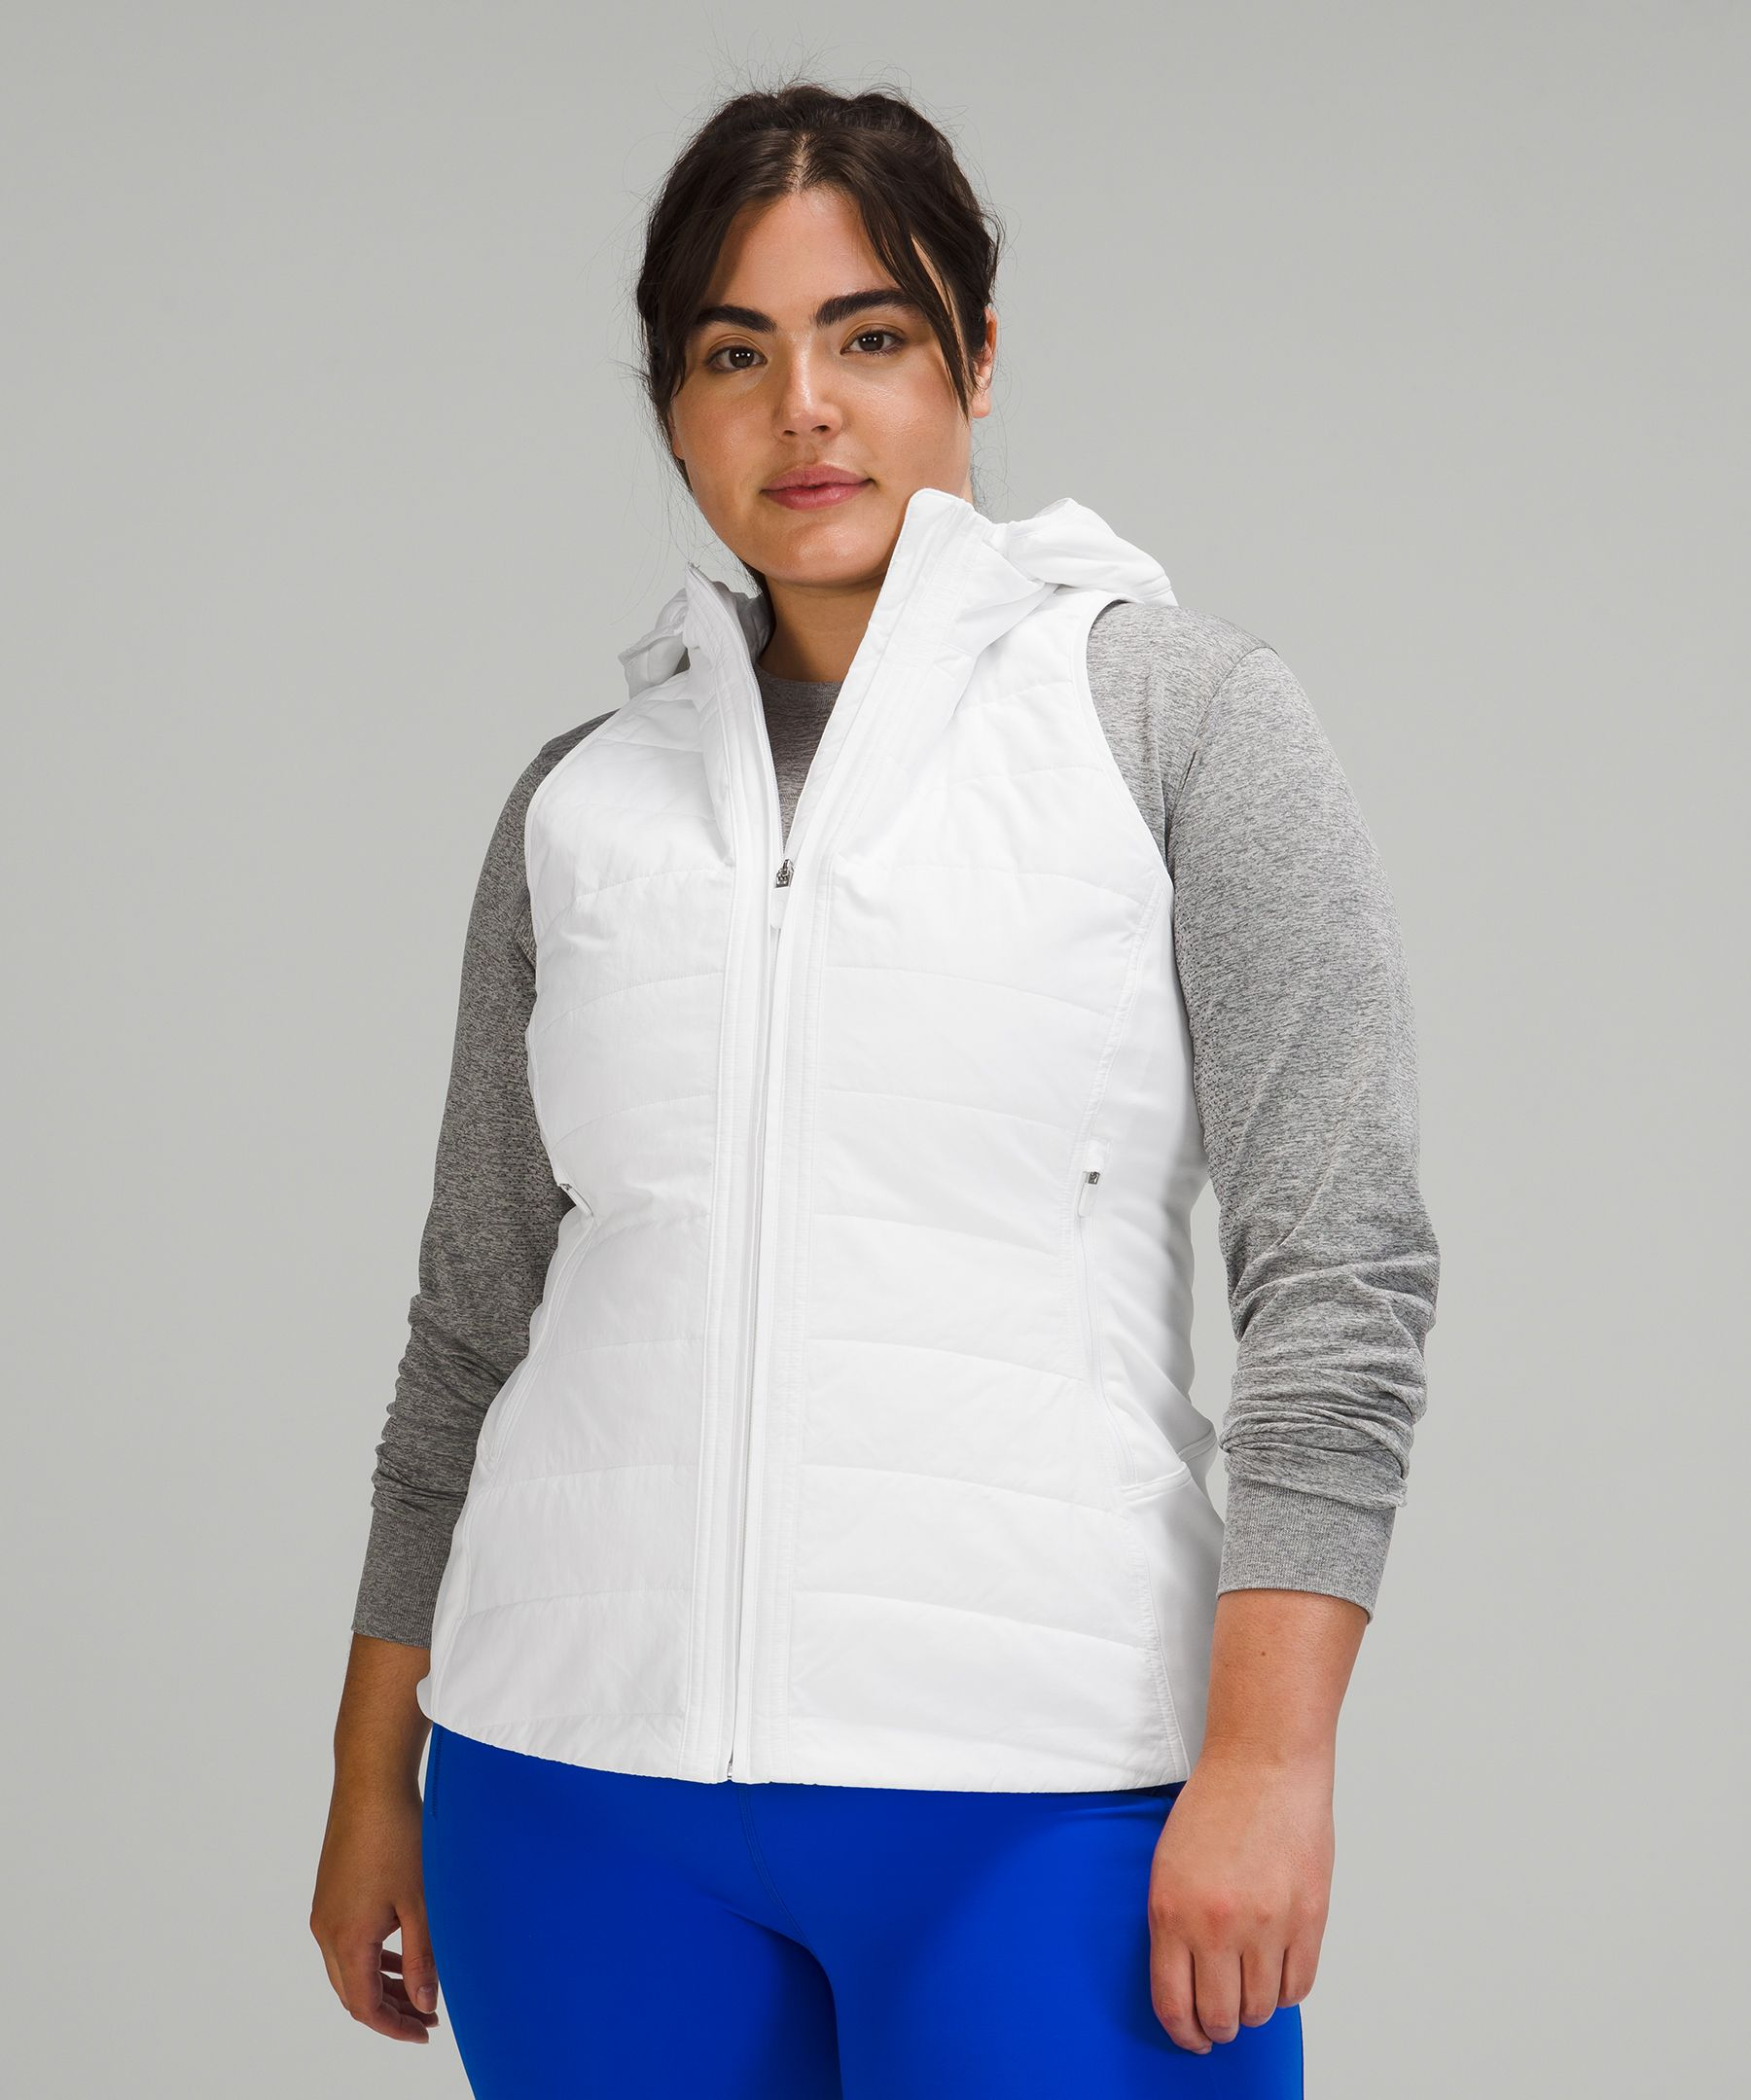 Running in the cold never felt  so good. This vest has  windproof, water-repellent  fabric in the areas most  exposed to the elements, and  stretchy Tech Fleece fabric  where you need to move. Bonus:  the fleece is water-repellent  too.